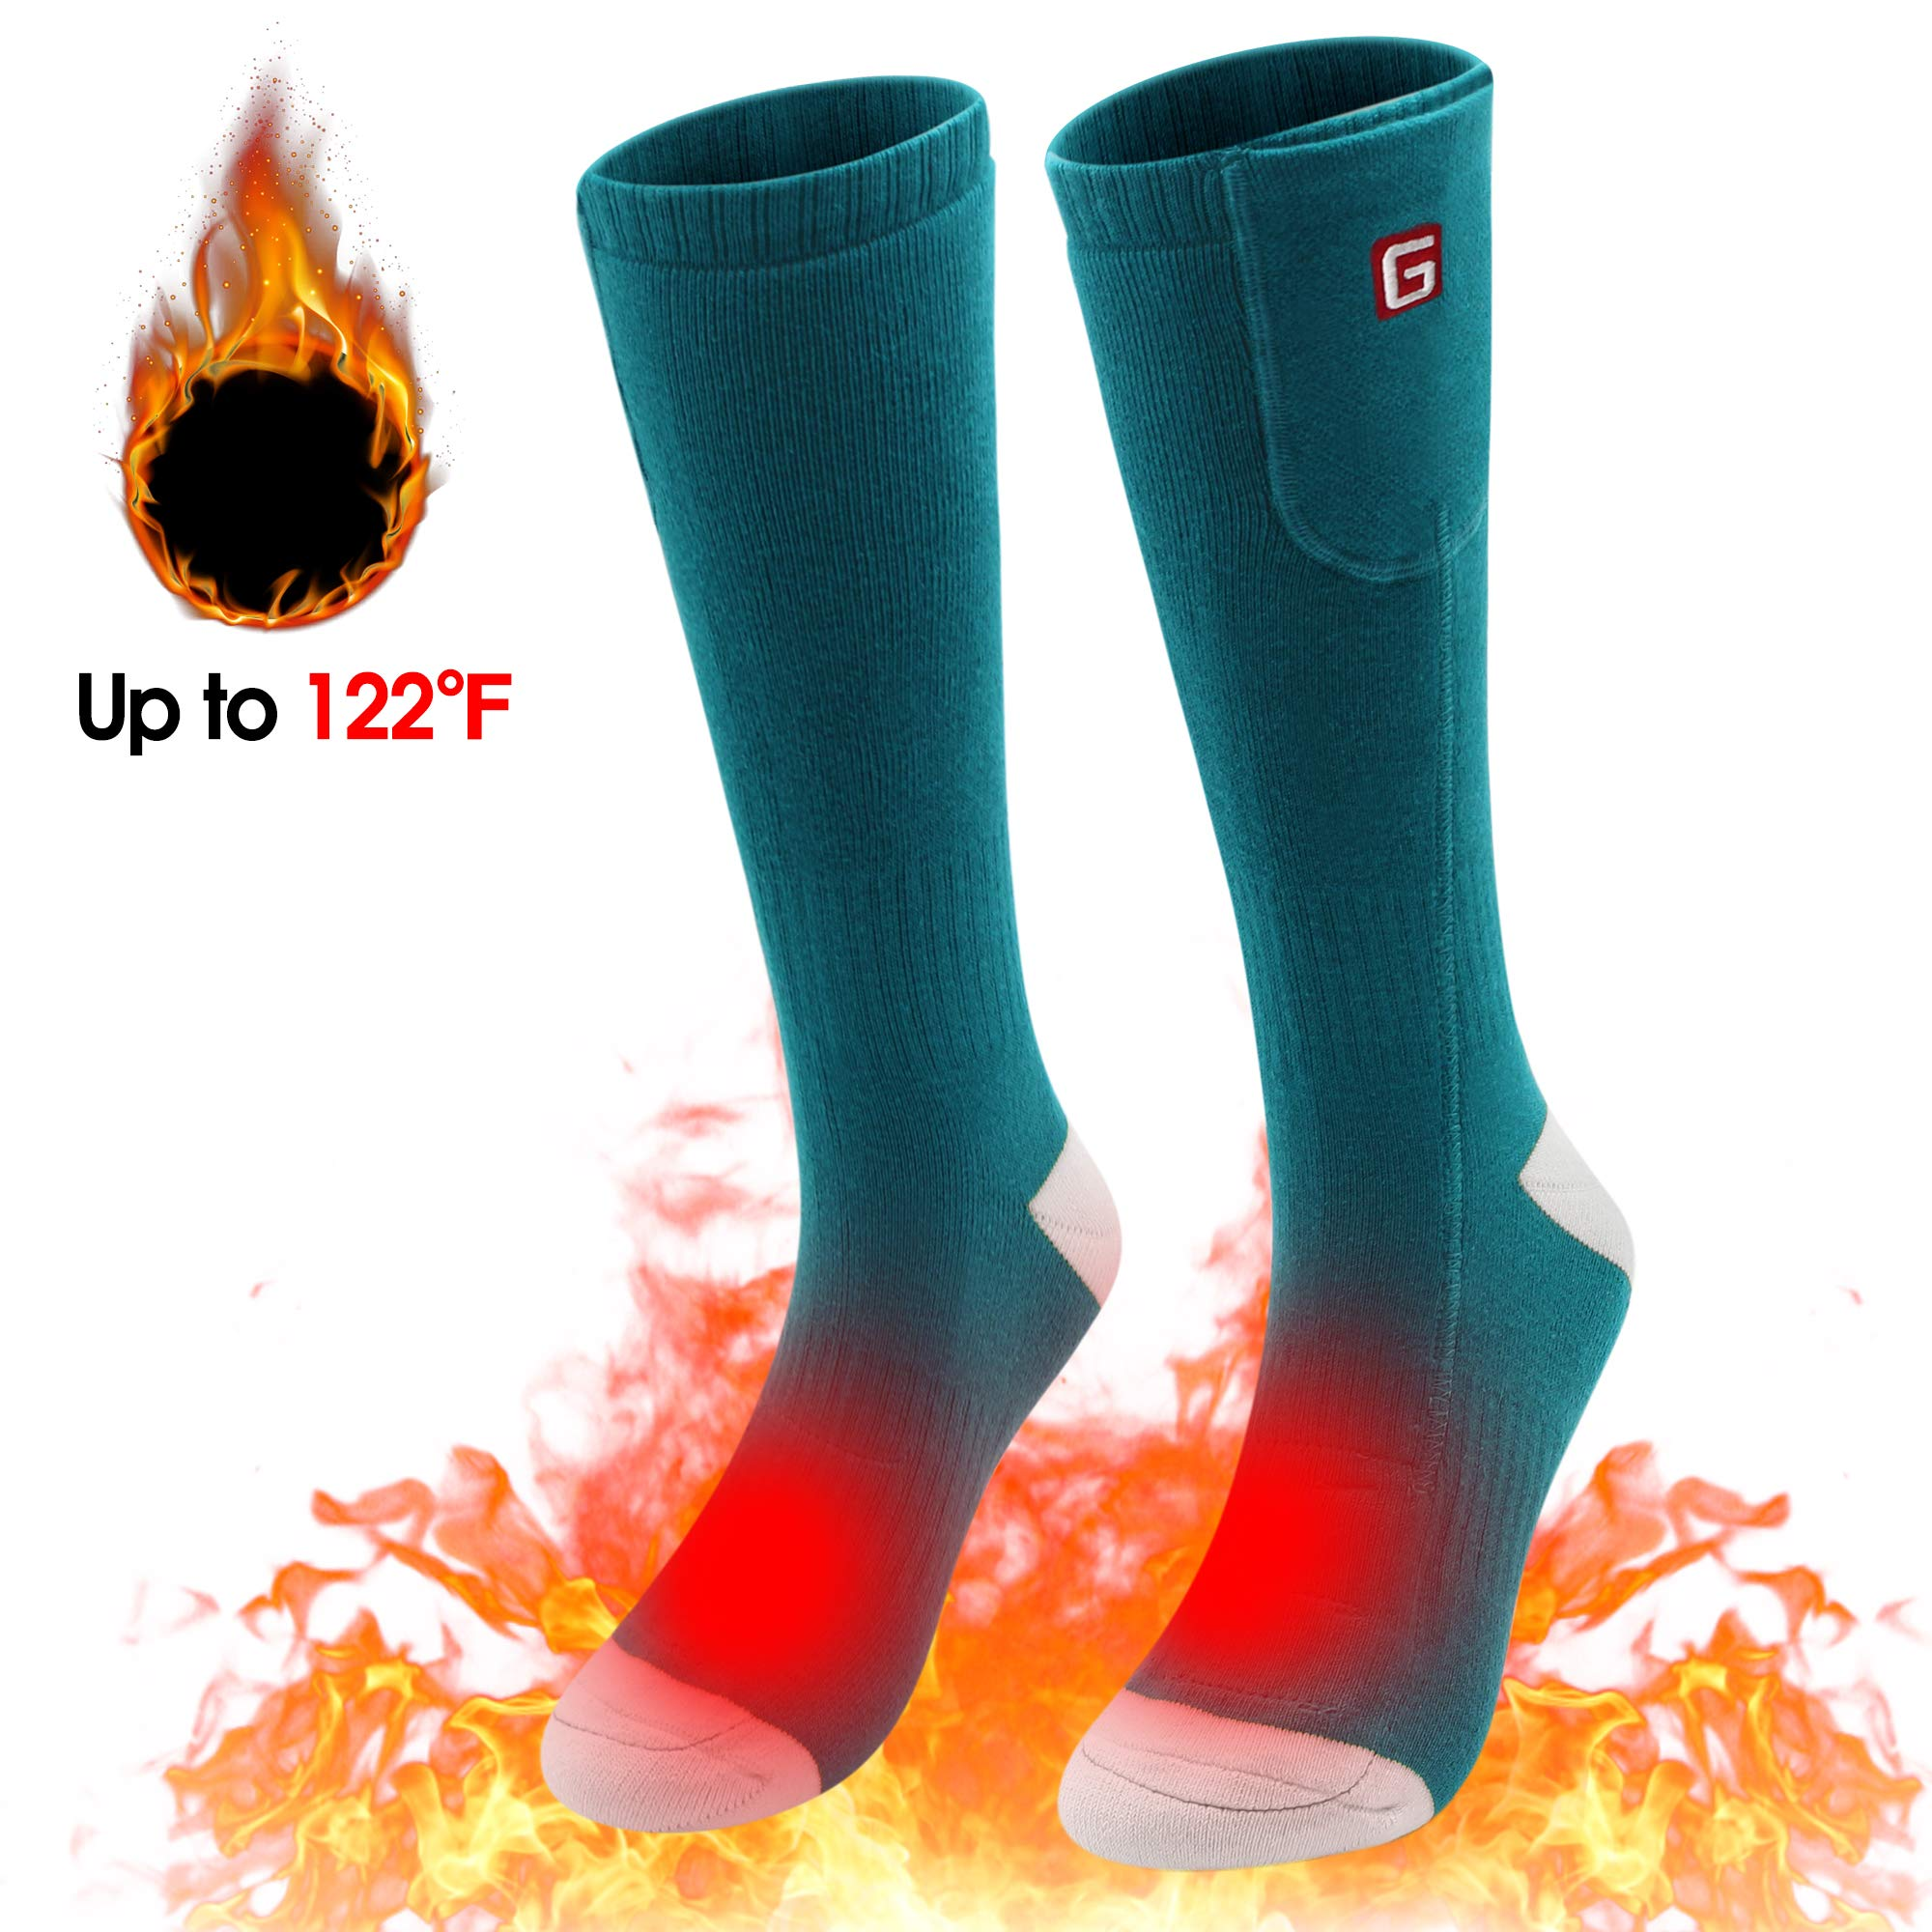 Spring Heated Socks,3.7V 2200MAH Electric Rechargeable Battery Heating Socks for Men Women Warm Cotton Socks Foot Warmer Hot Feet (Green&White) by Unknown